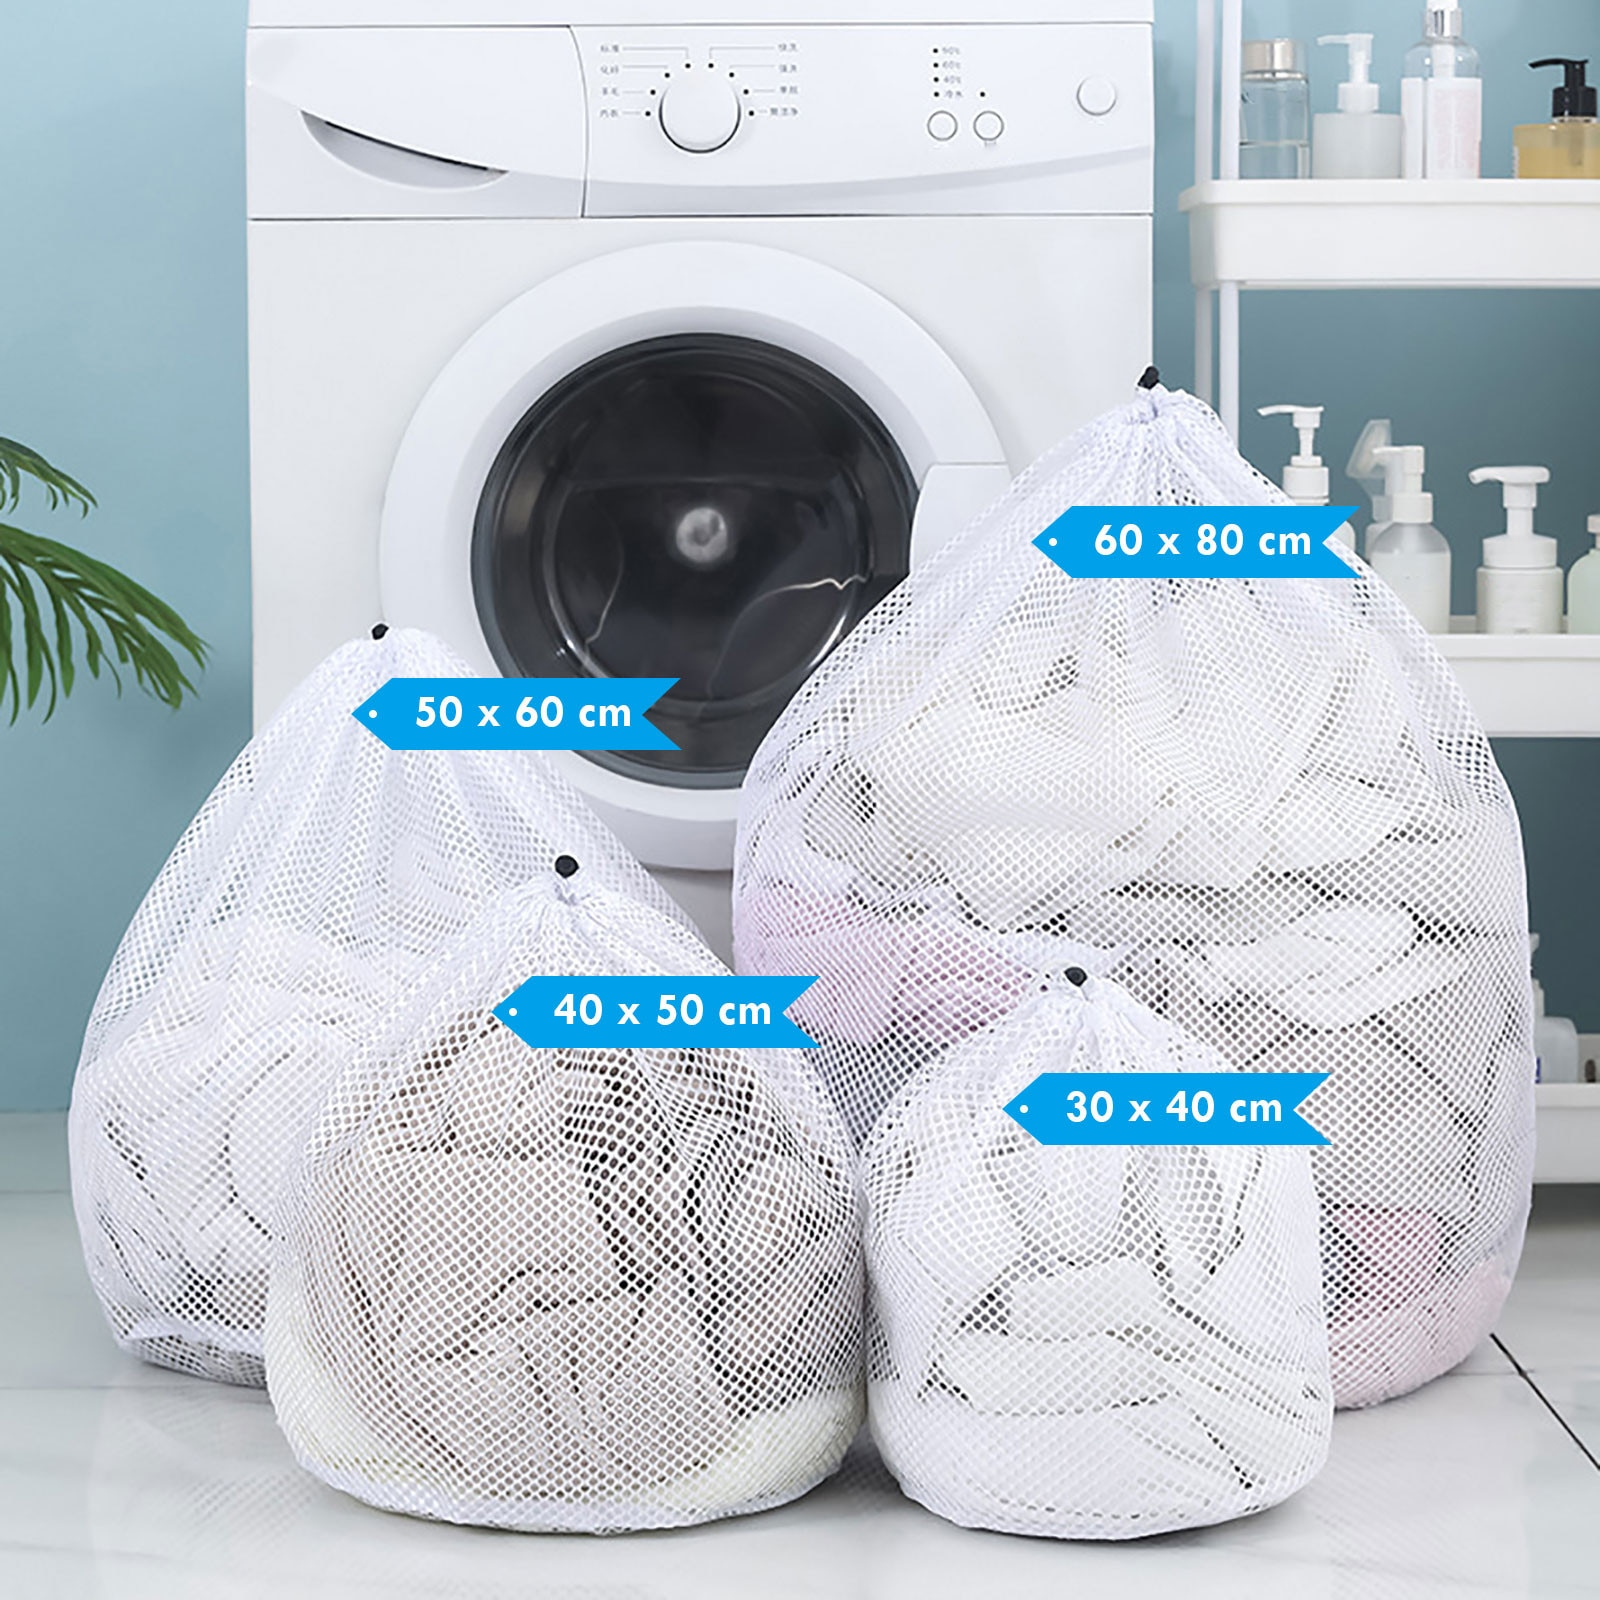 4 yards washing laundry bag laundry care foldable protective net filter mesh underwear socks underwear washing machine clothes s m l size washing laundry bag socks underwear washing machine clothesclothing care foldable net filter underwear bra protection